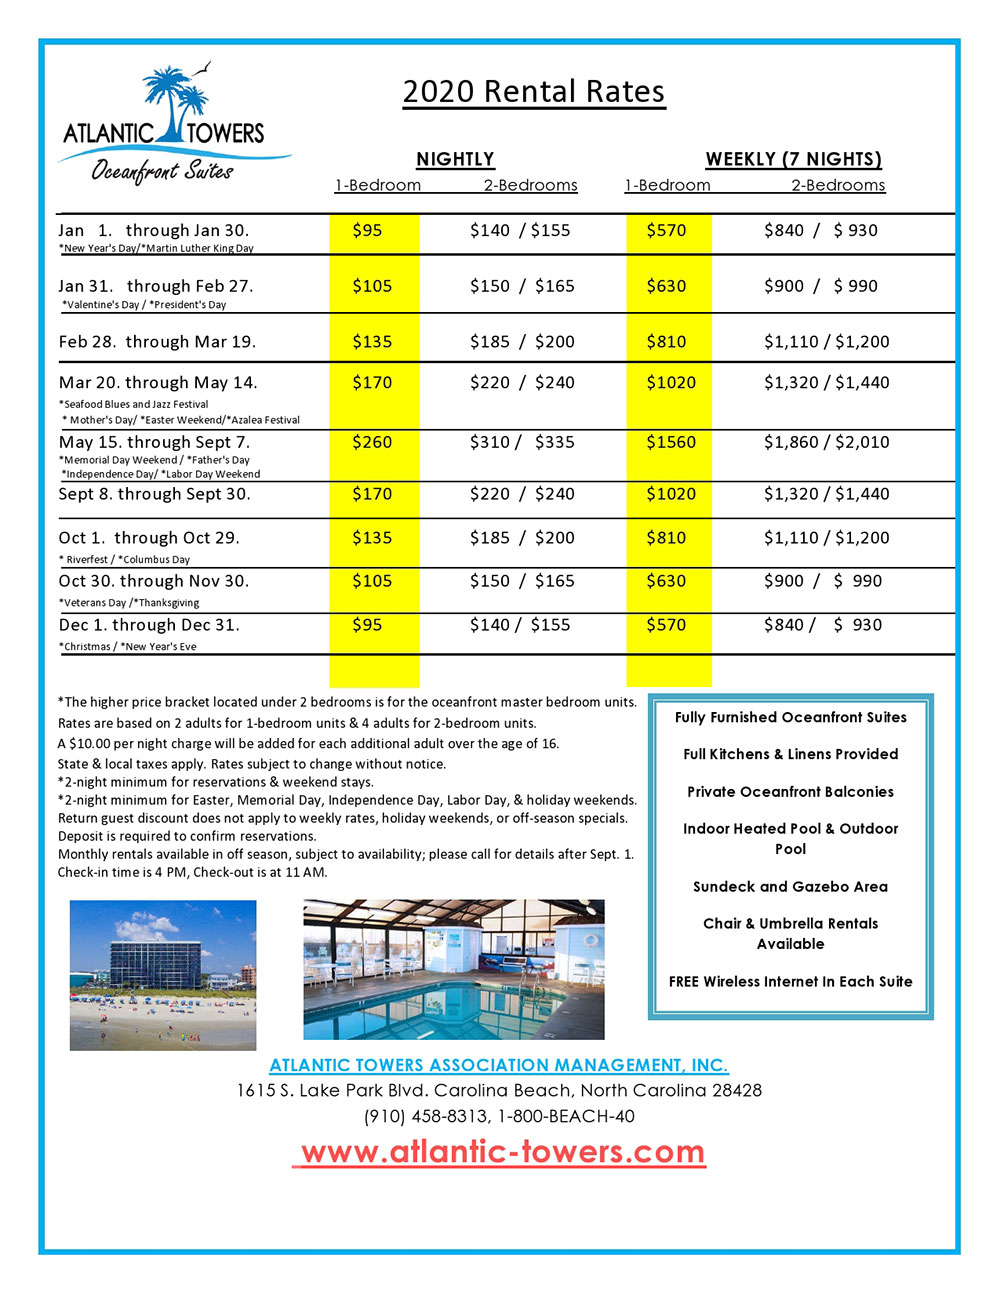 Atlantic Towers Rental Rates